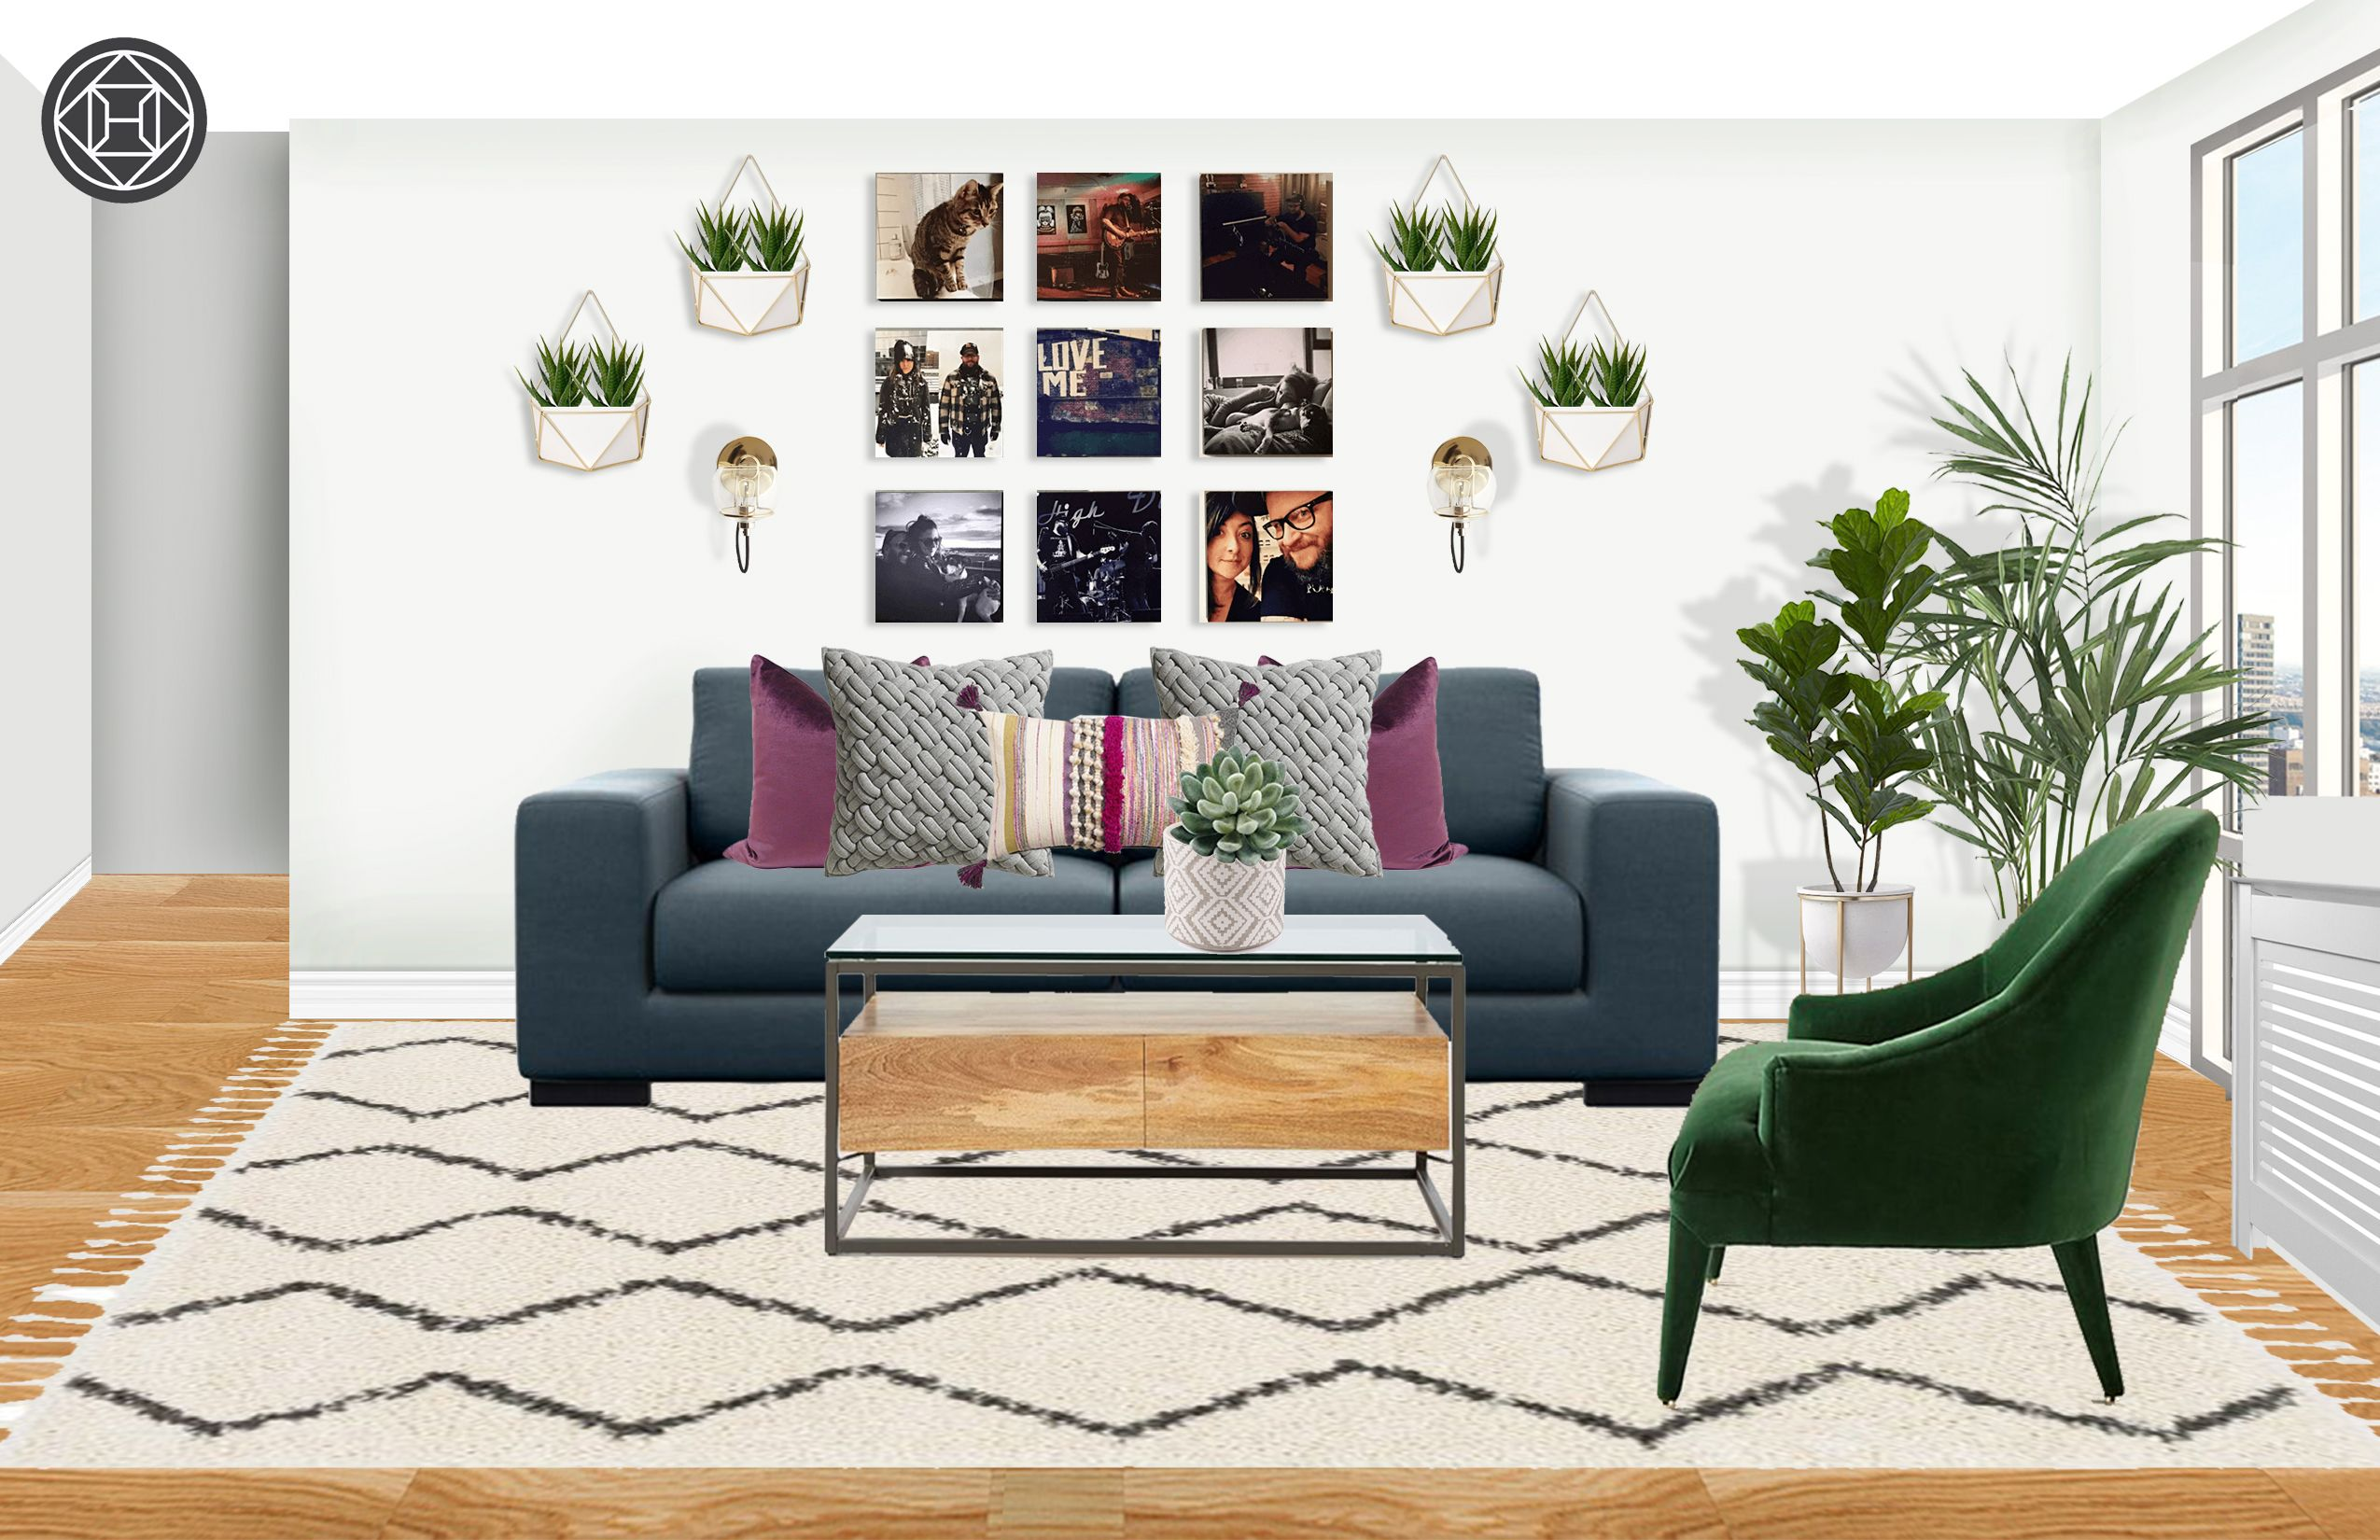 Contemporary Eclectic Global Living Room Design By Havenly Interior Designer Akira With Images Eclectic Living Room Global Living Room Living Room Designs